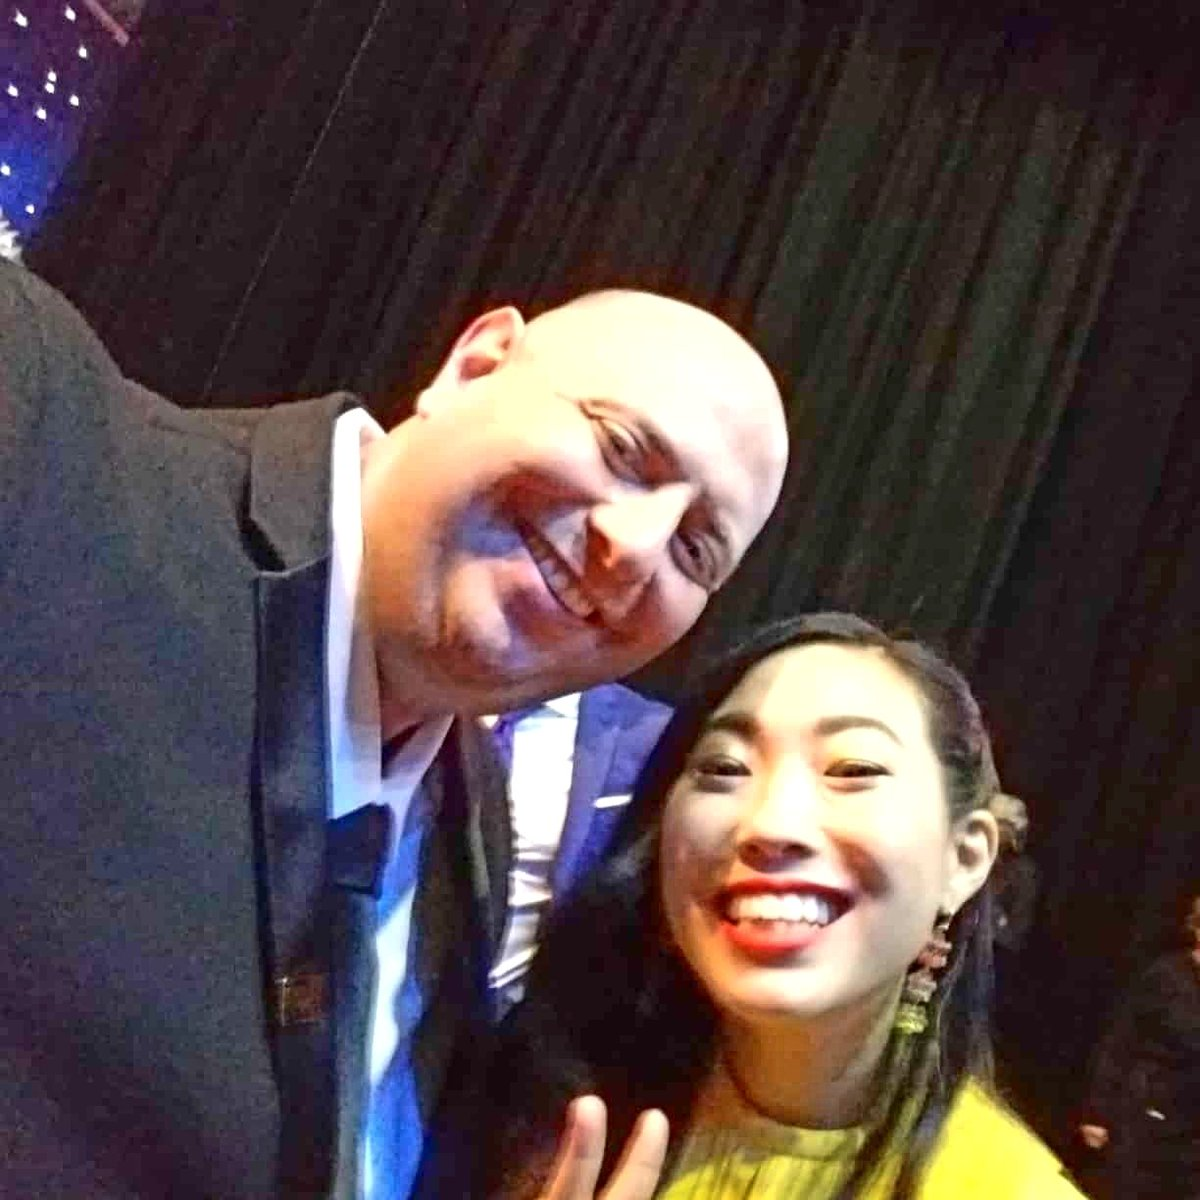 I was told I needed to be more social on social media, so here's a #TBThursday when I met .@awkwafina at the #criticschoiceawards2020. Don't forget to catch #Awkwafina is #NoraFromQueens on @ComedyCentralpic.twitter.com/pOMXpe1HDn